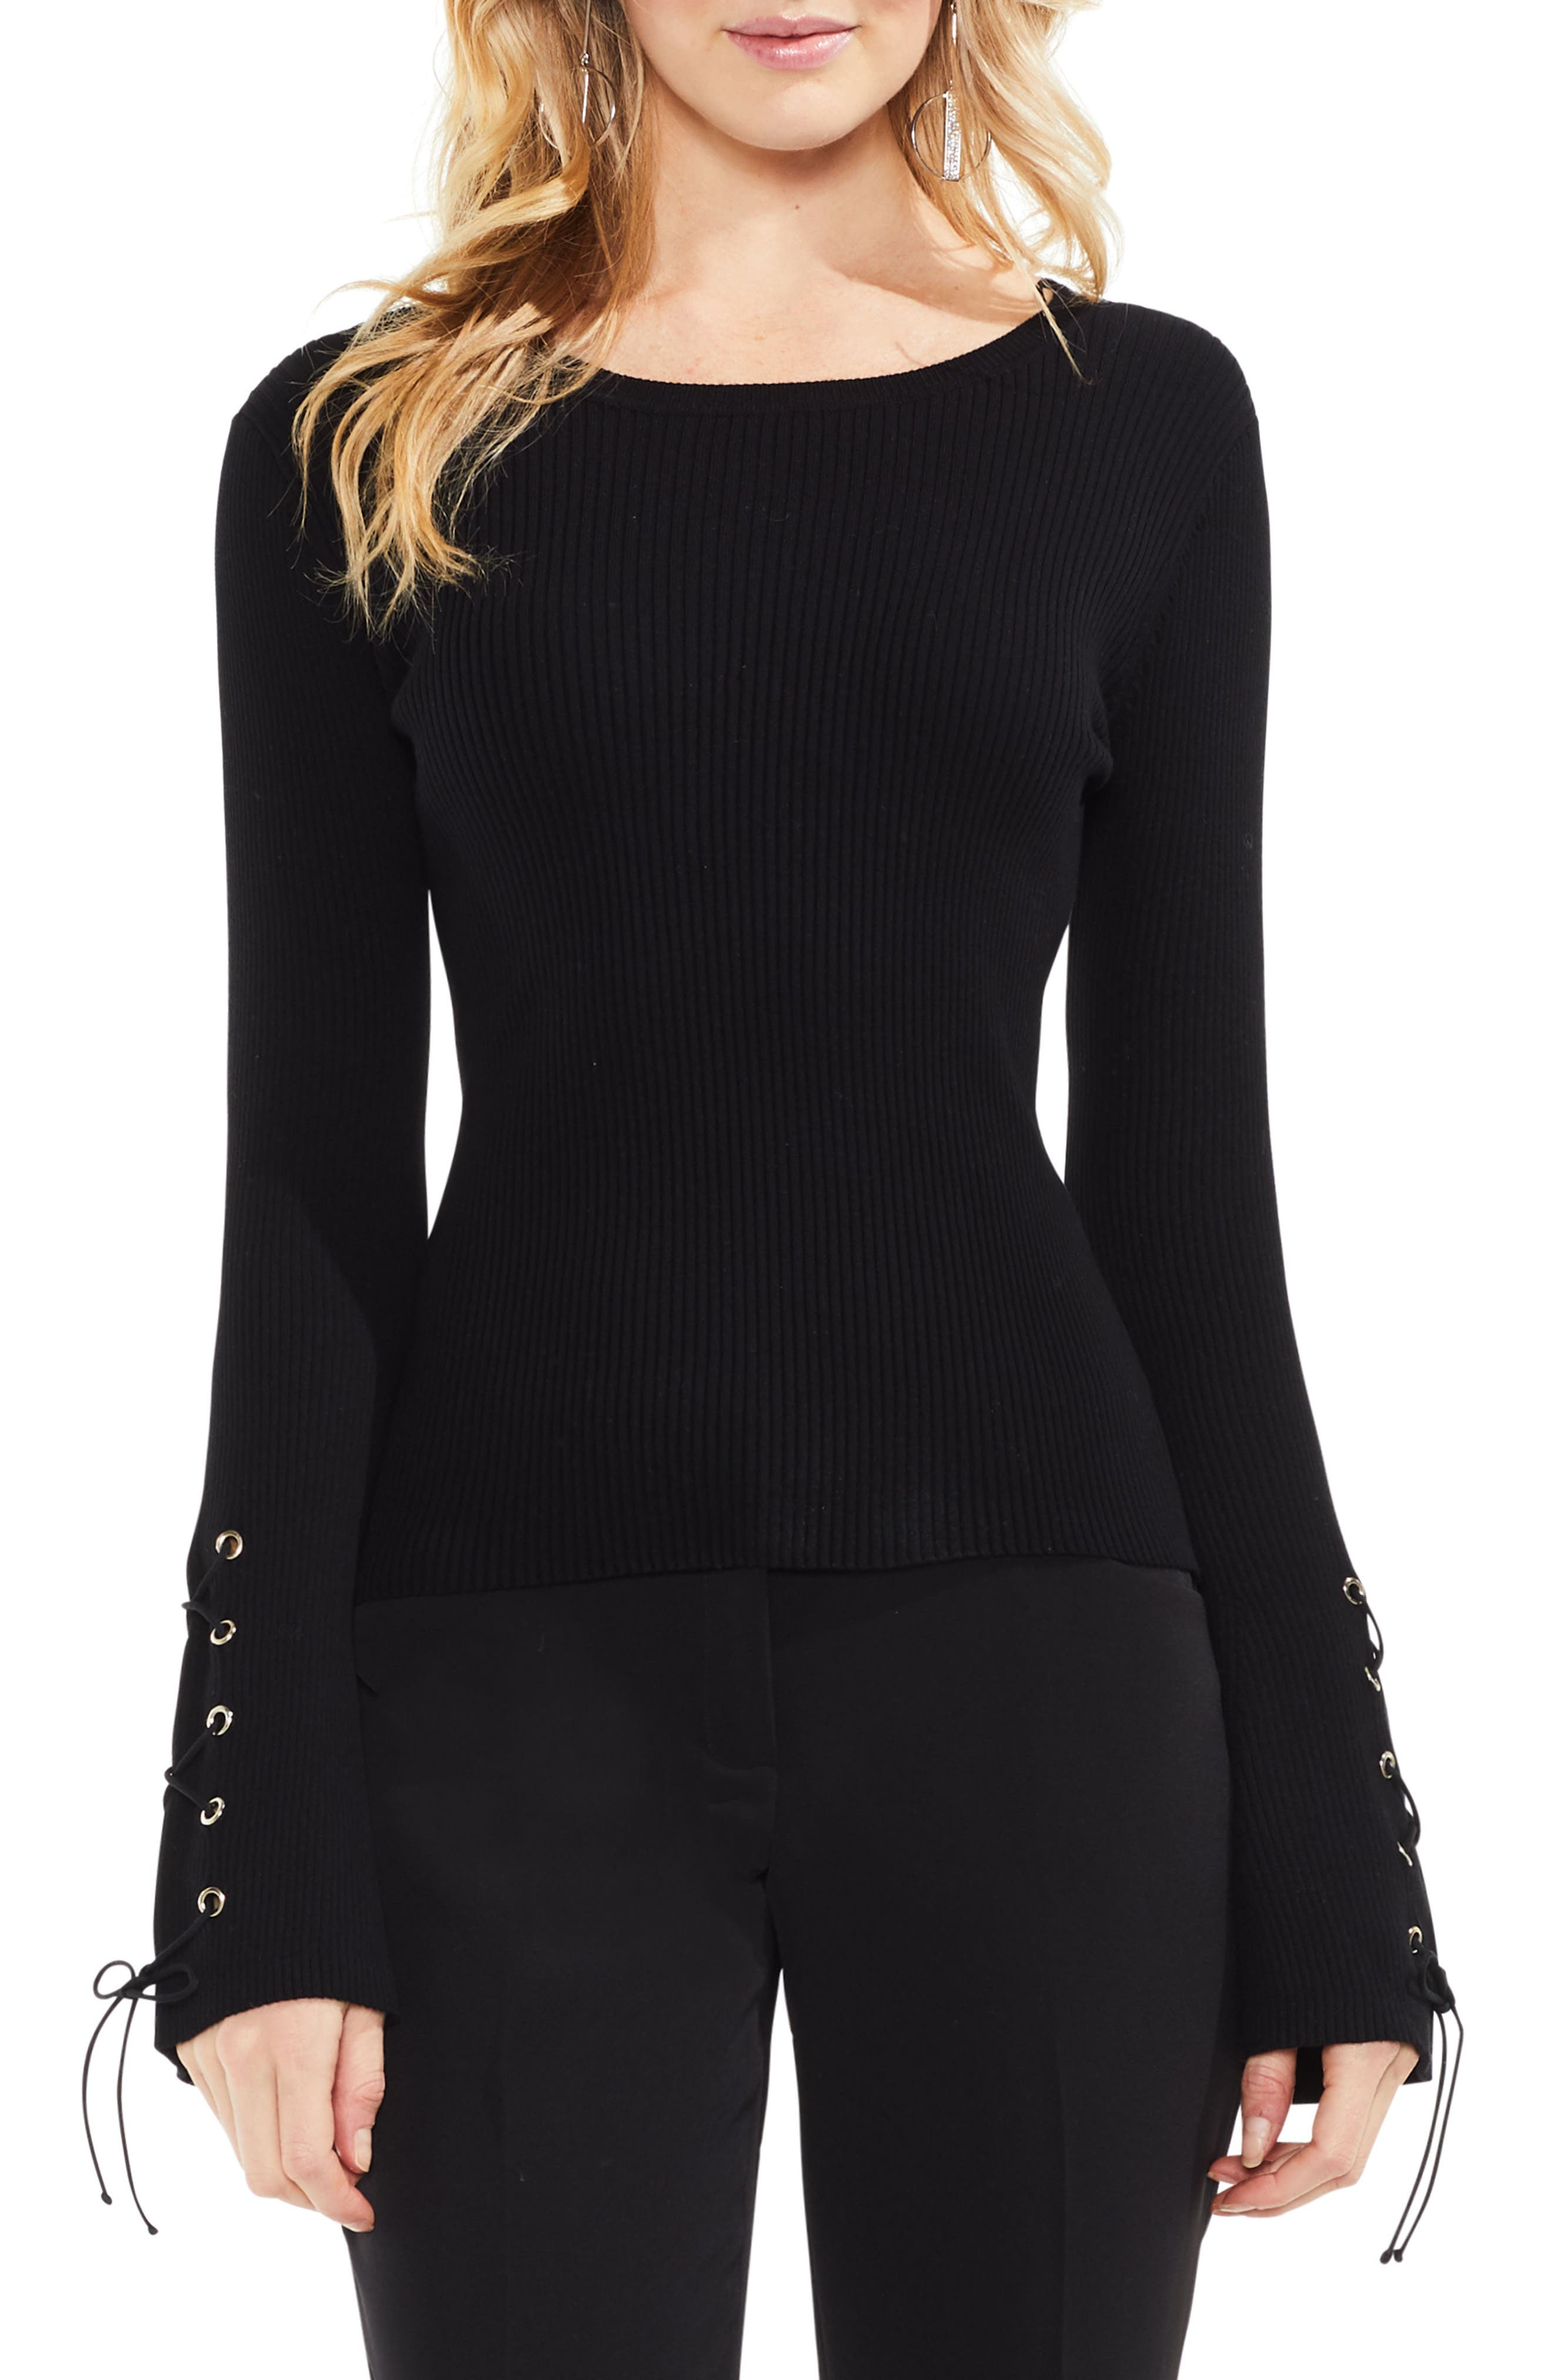 Alternate Image 1 Selected - Vince Camuto Lace-Up Bell Sleeve Ribbed Sweater (Regular & Petite)